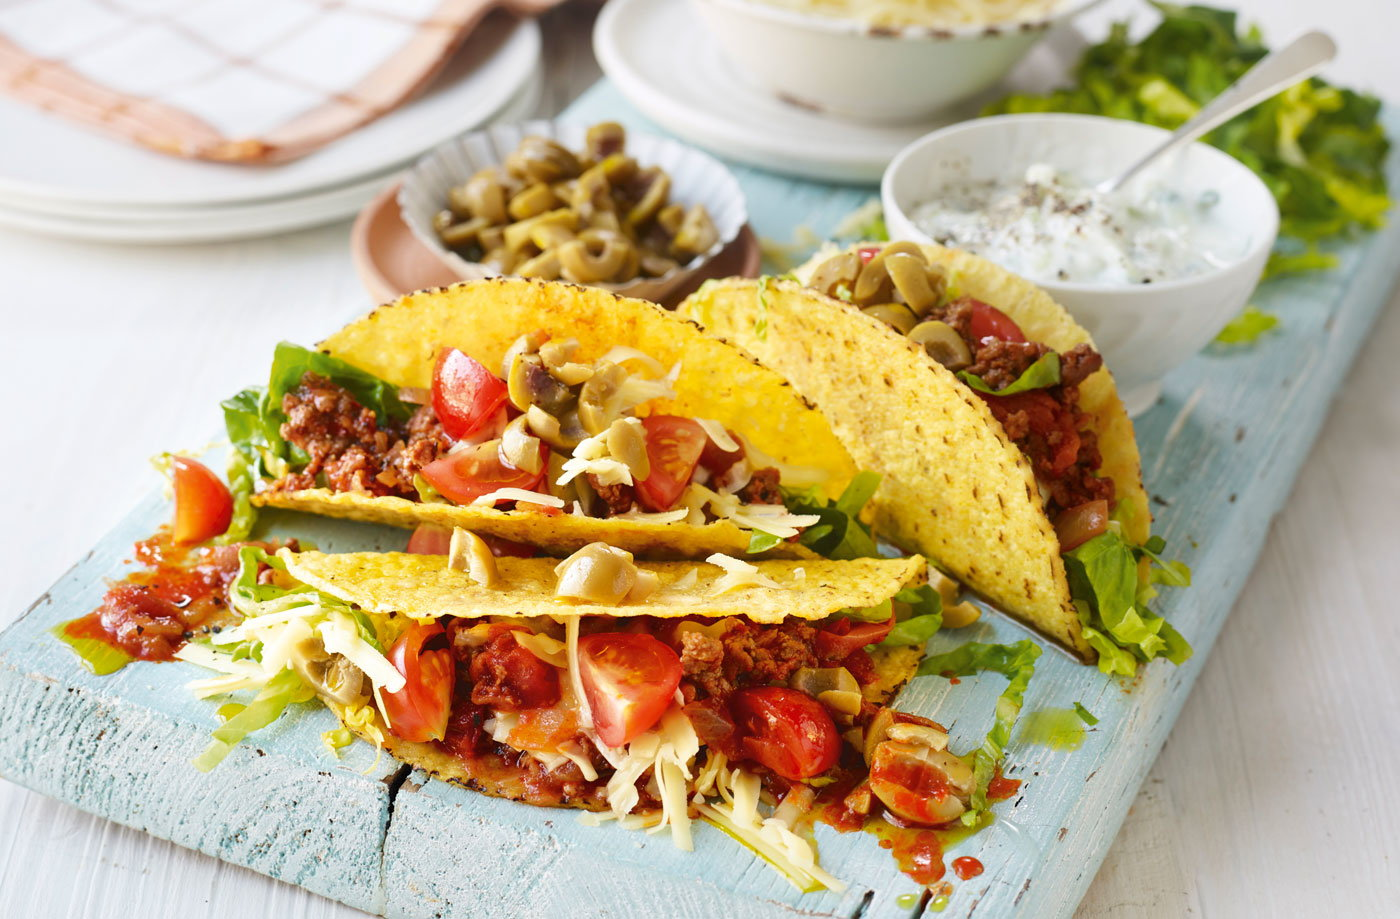 Harissa lamb tacos recipe